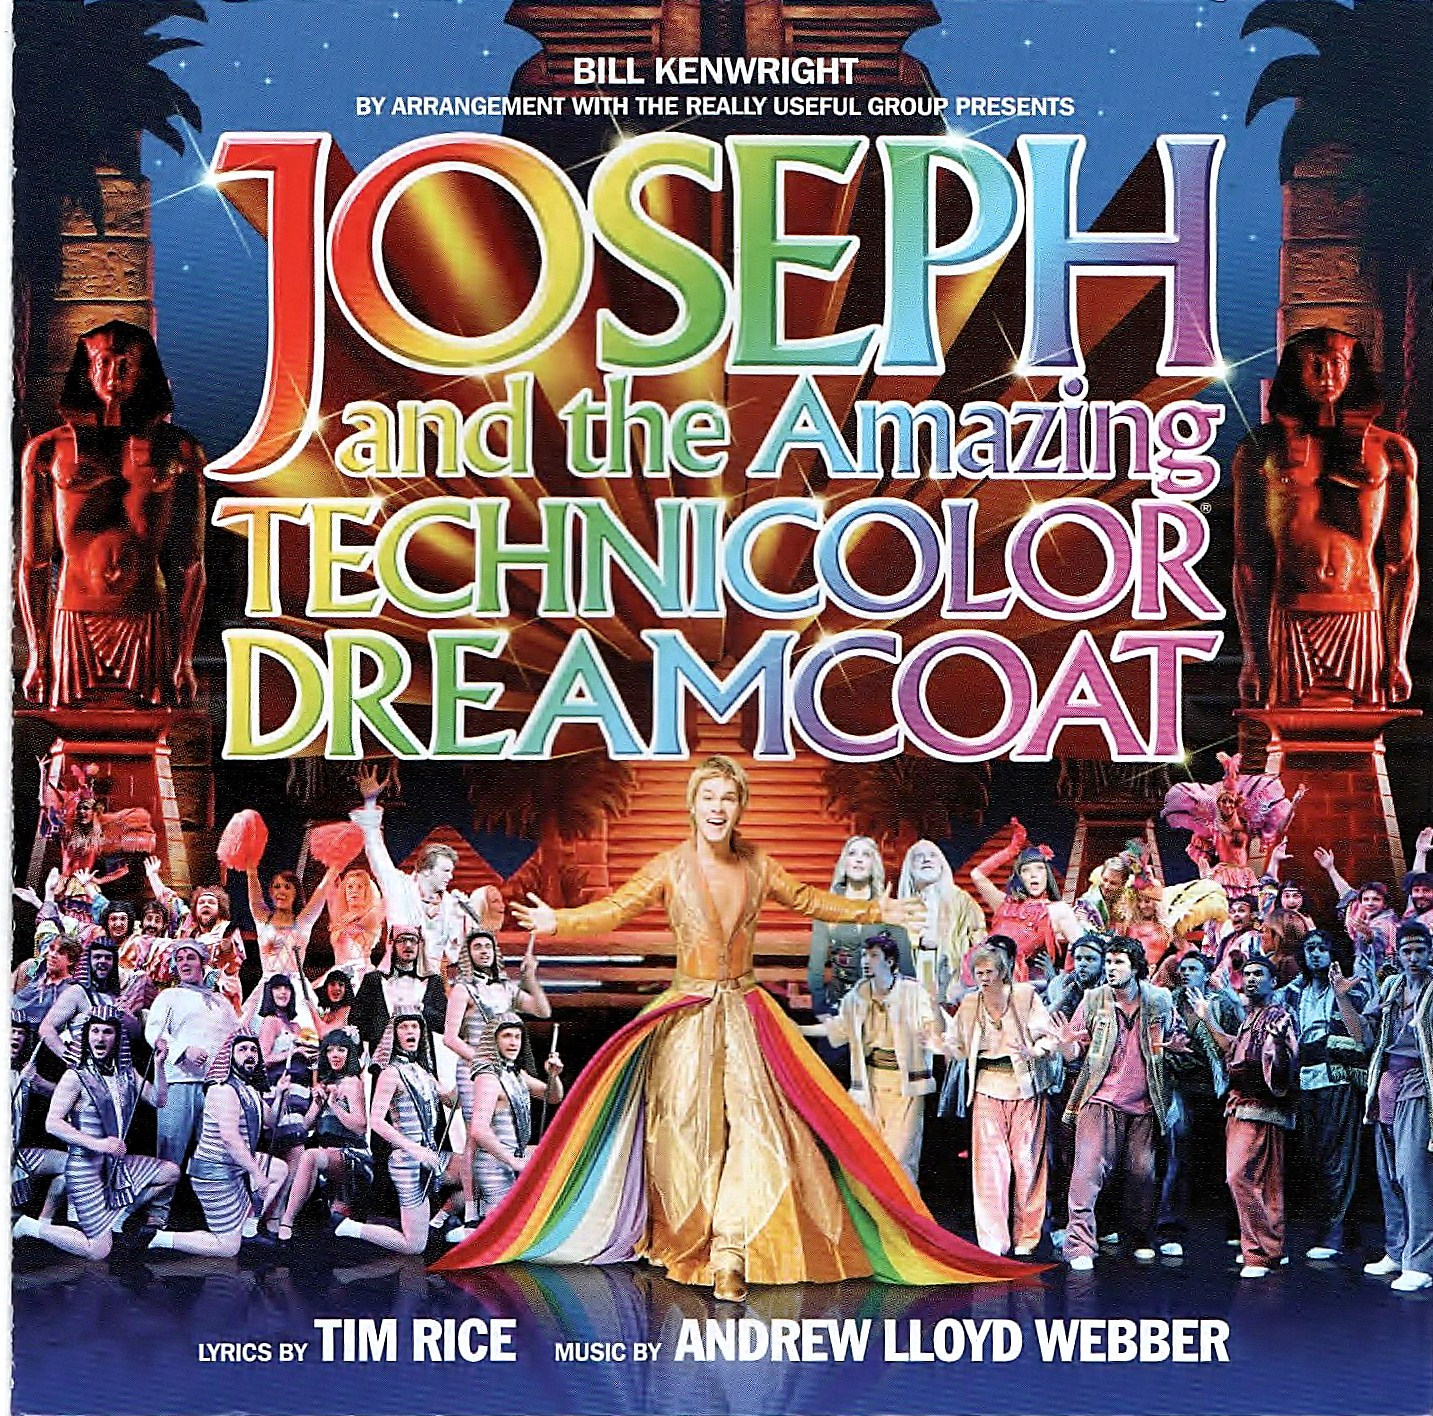 Joseph and the Amazing Tehnicolor Dreamcoat